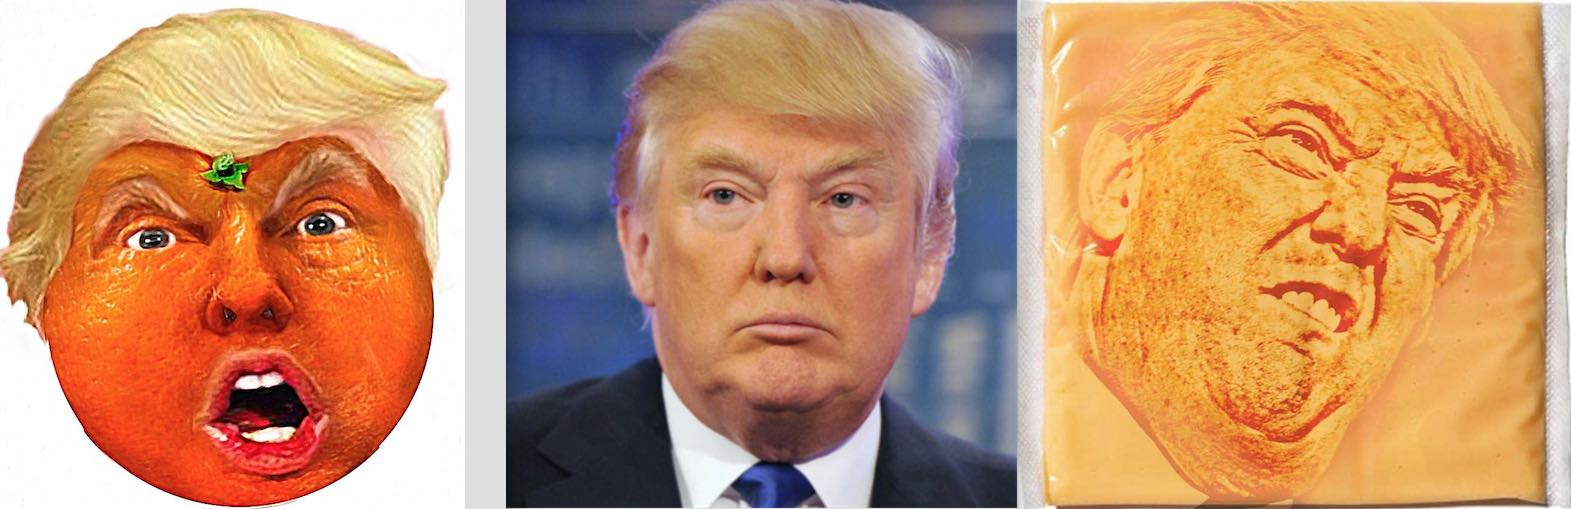 Donald Trump color complexion orange